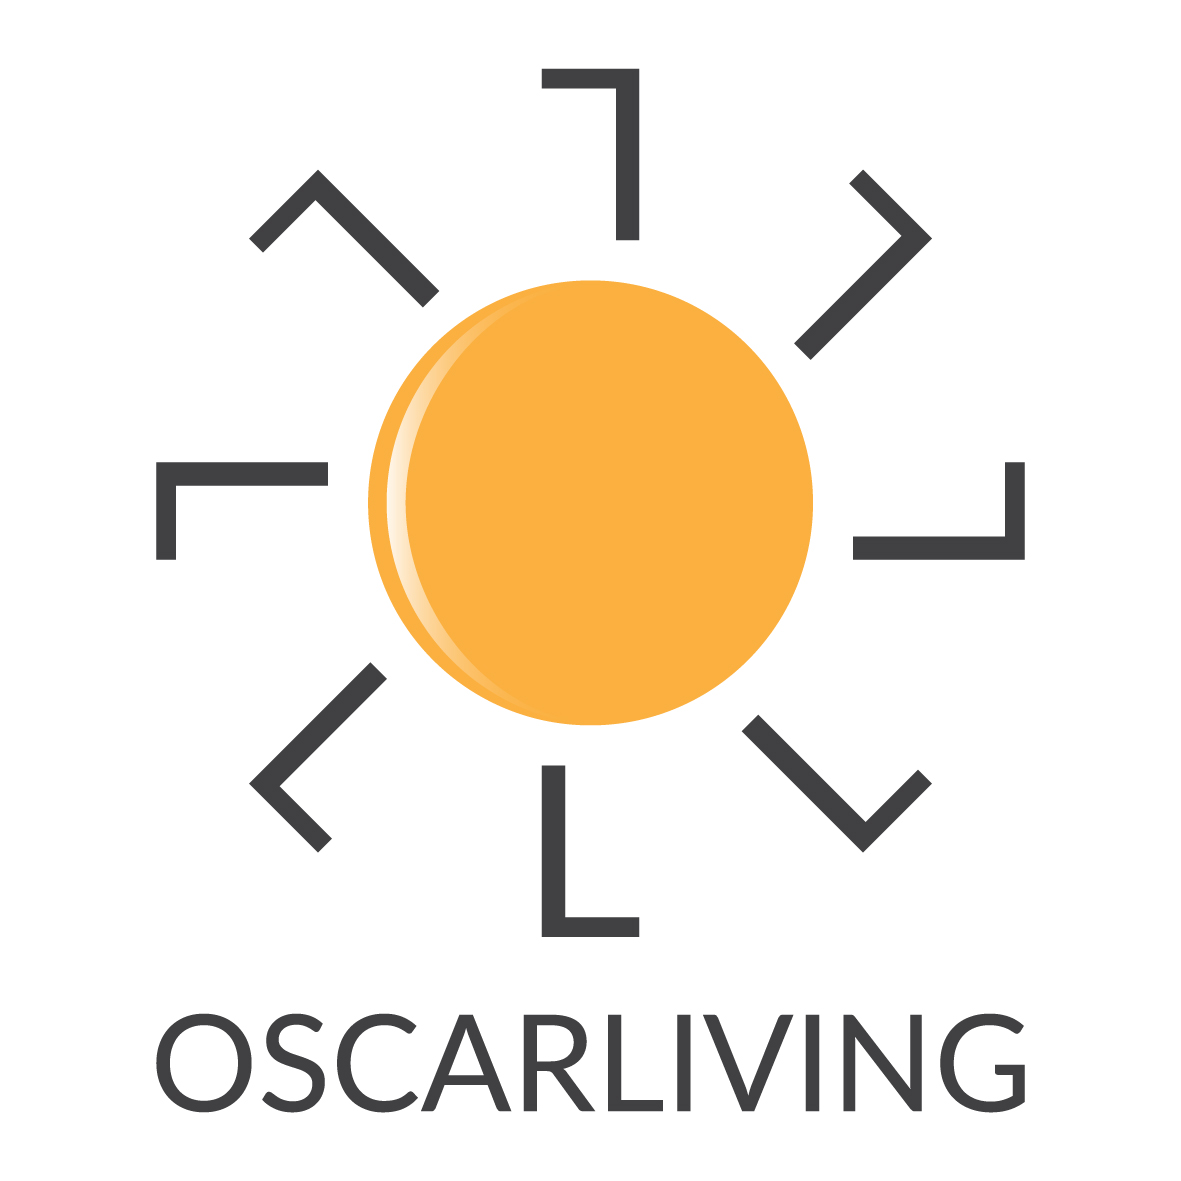 Oscarliving